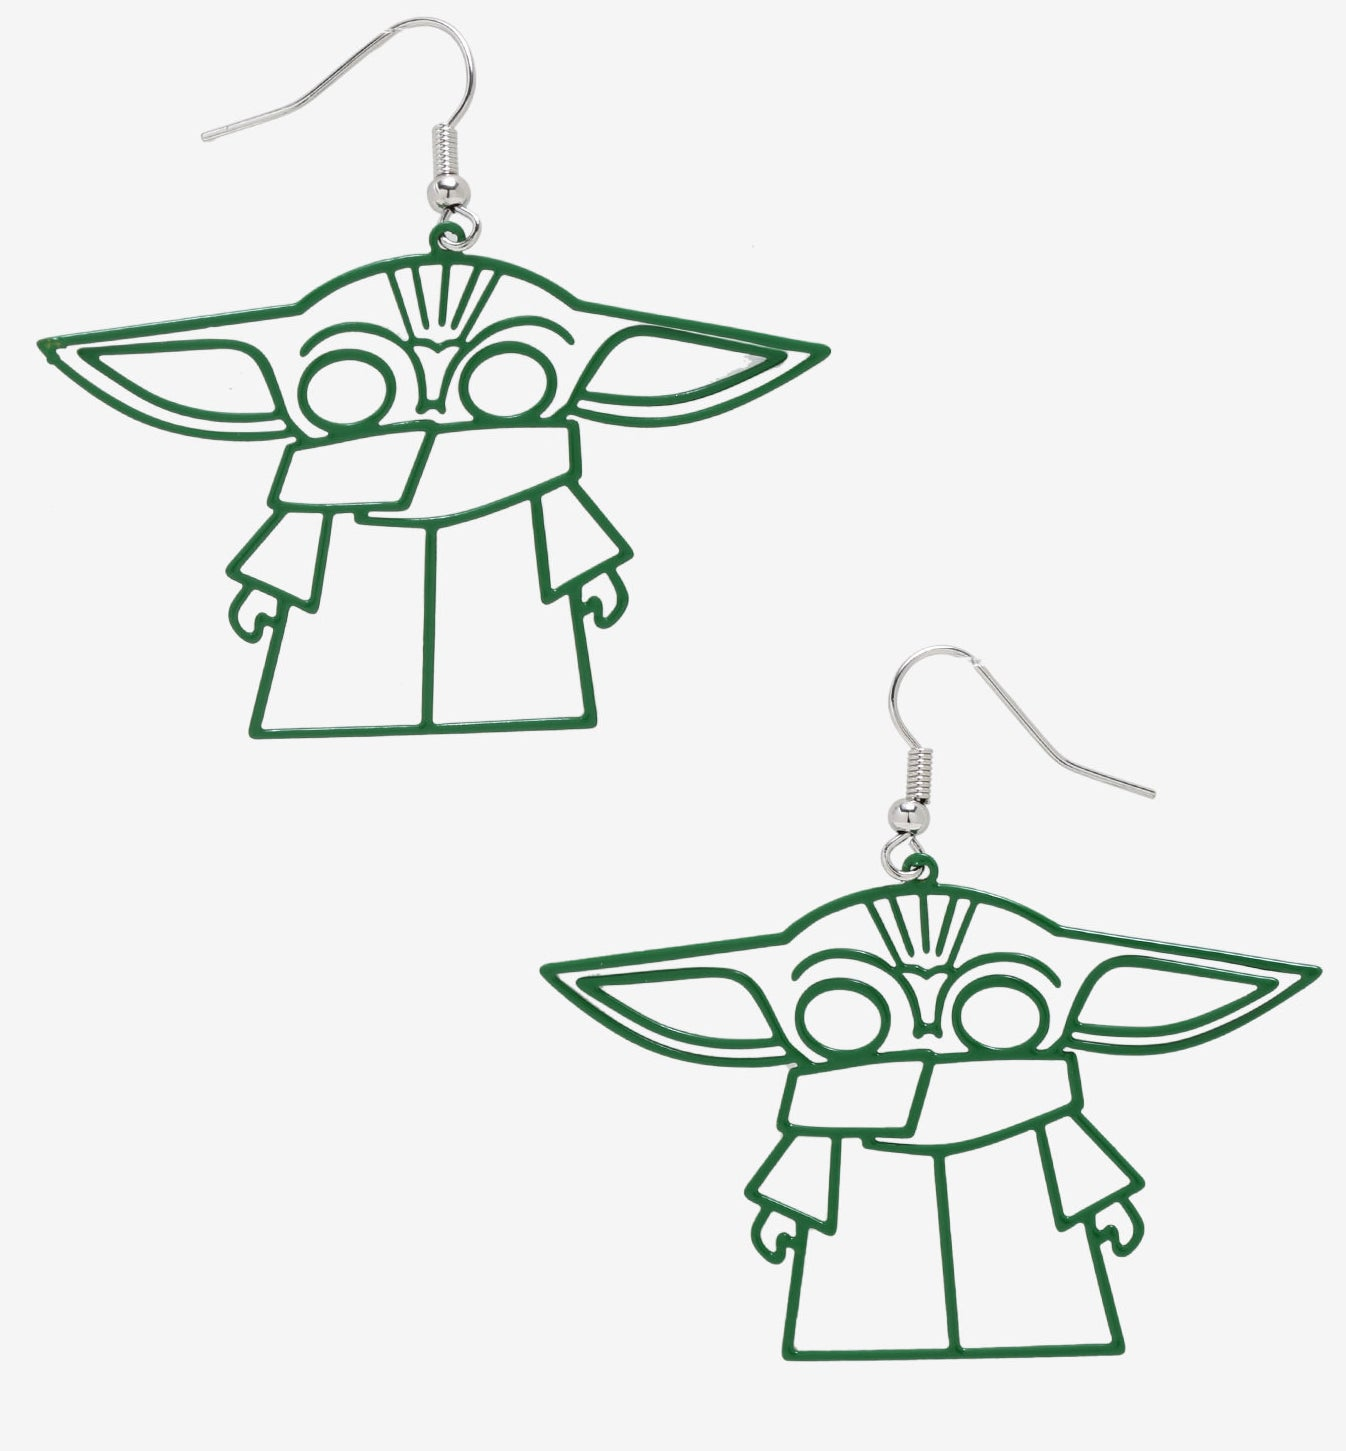 The earrings, which are each a large green wire frame design in the shape of Baby Yoda